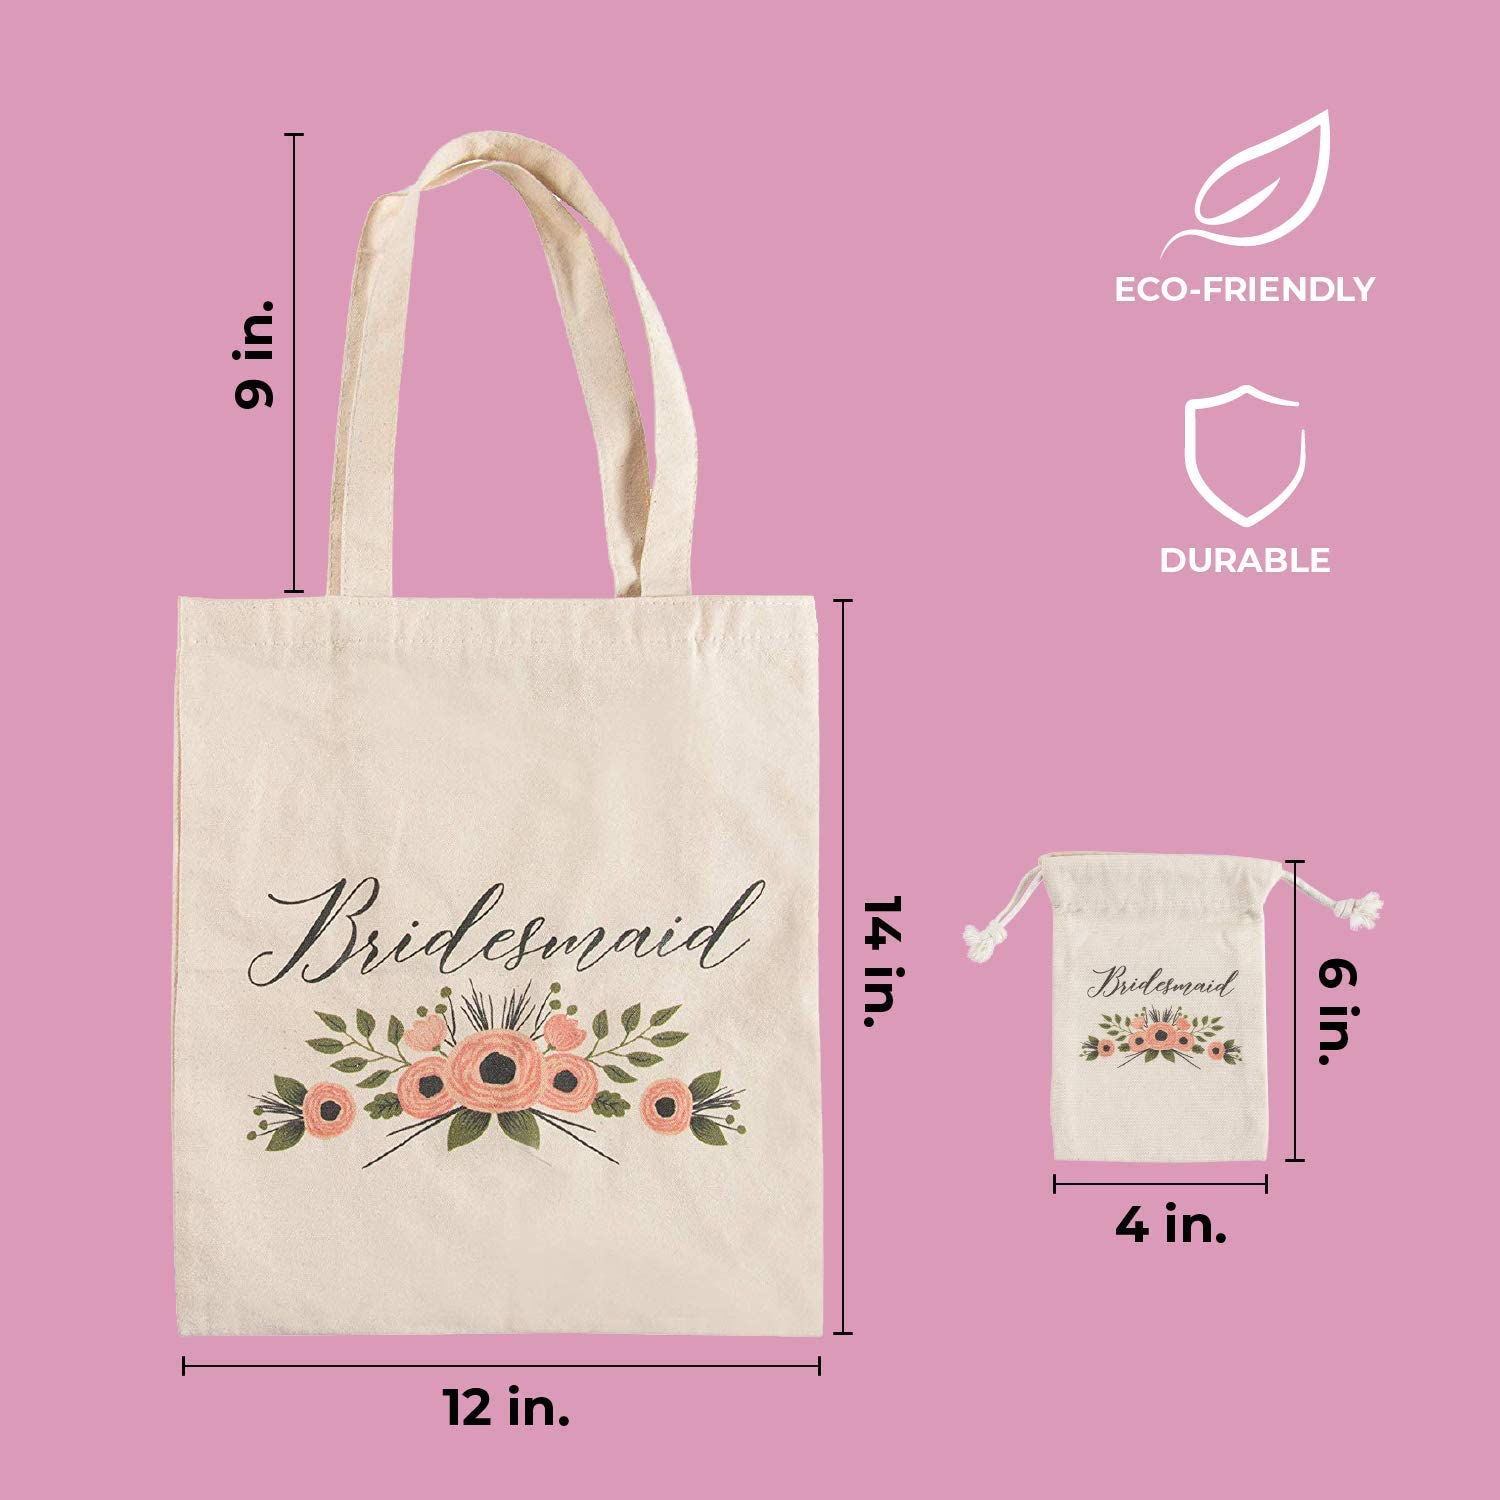 1 Cotton Canvas Tote Bag and 1 Drawstring Pouch for MOH Gift Bags for Bridal Party Rustic Floral Design Bridal Shower Favors Maid of Honor Gift Set